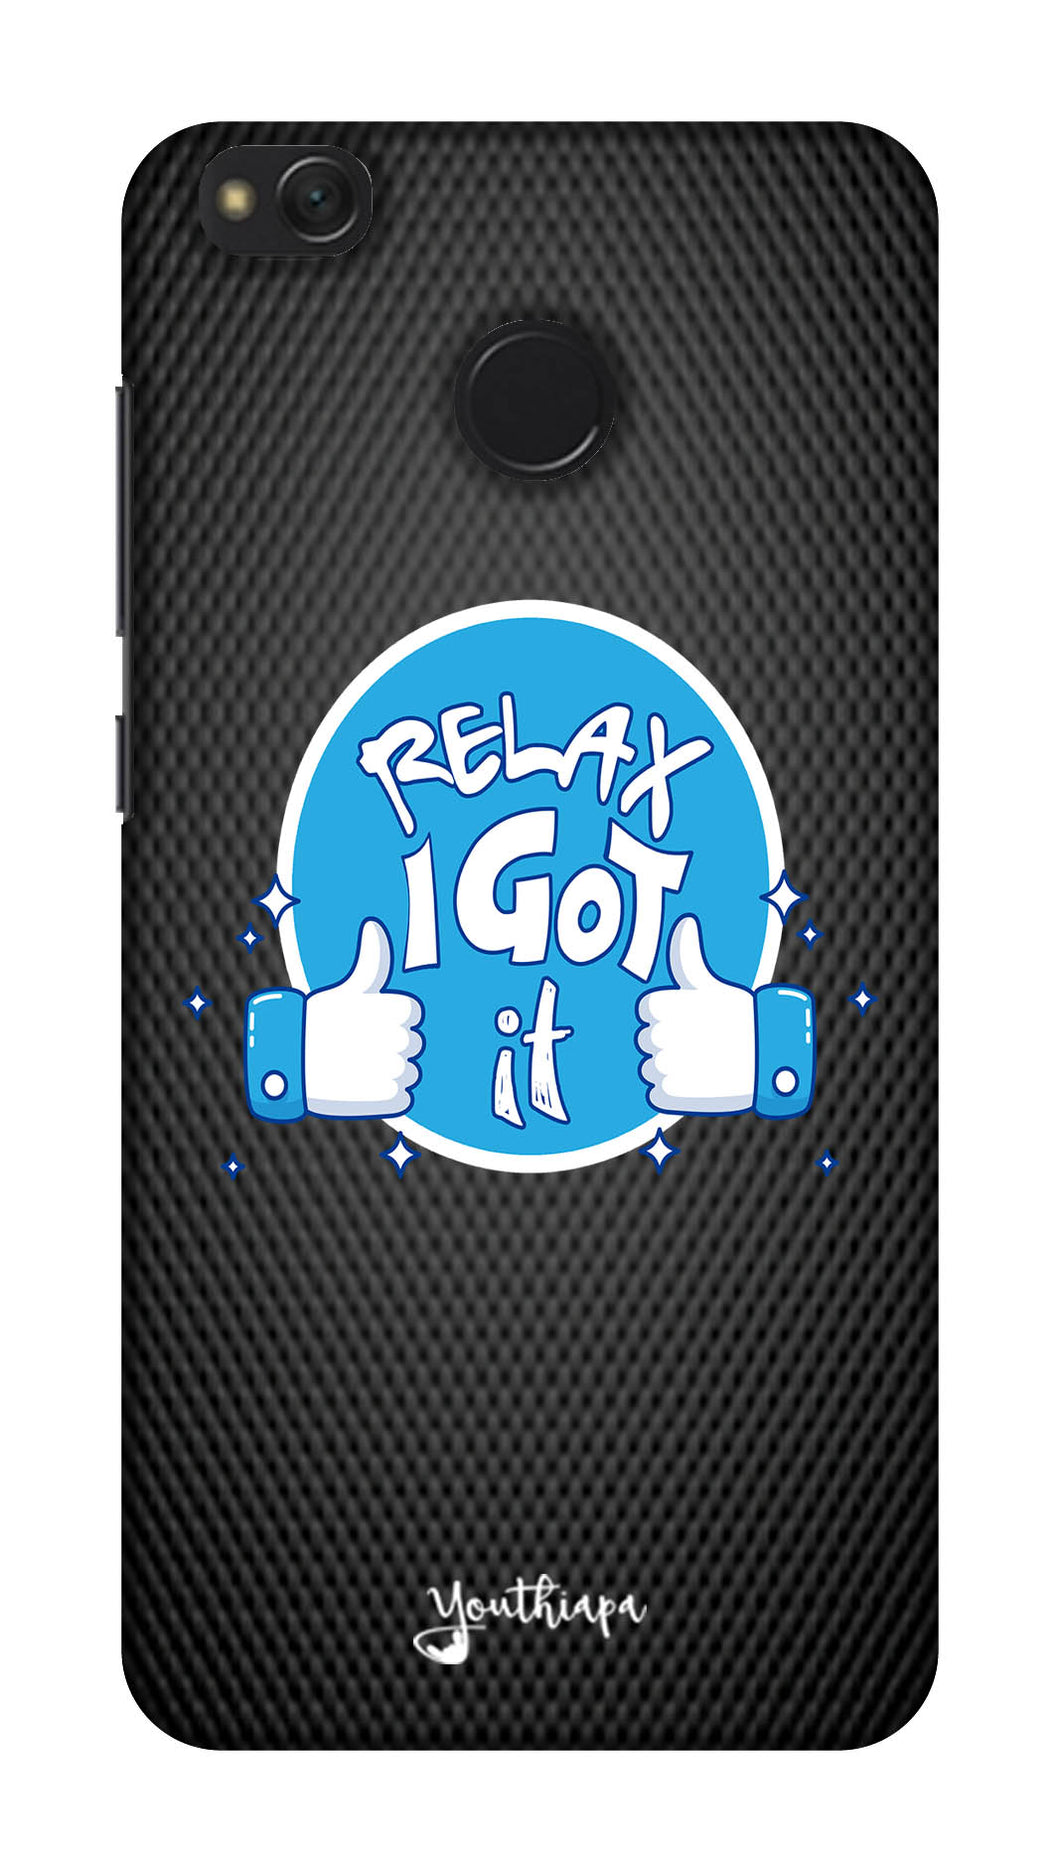 Relax Edition for Xiaomi Redmi 4